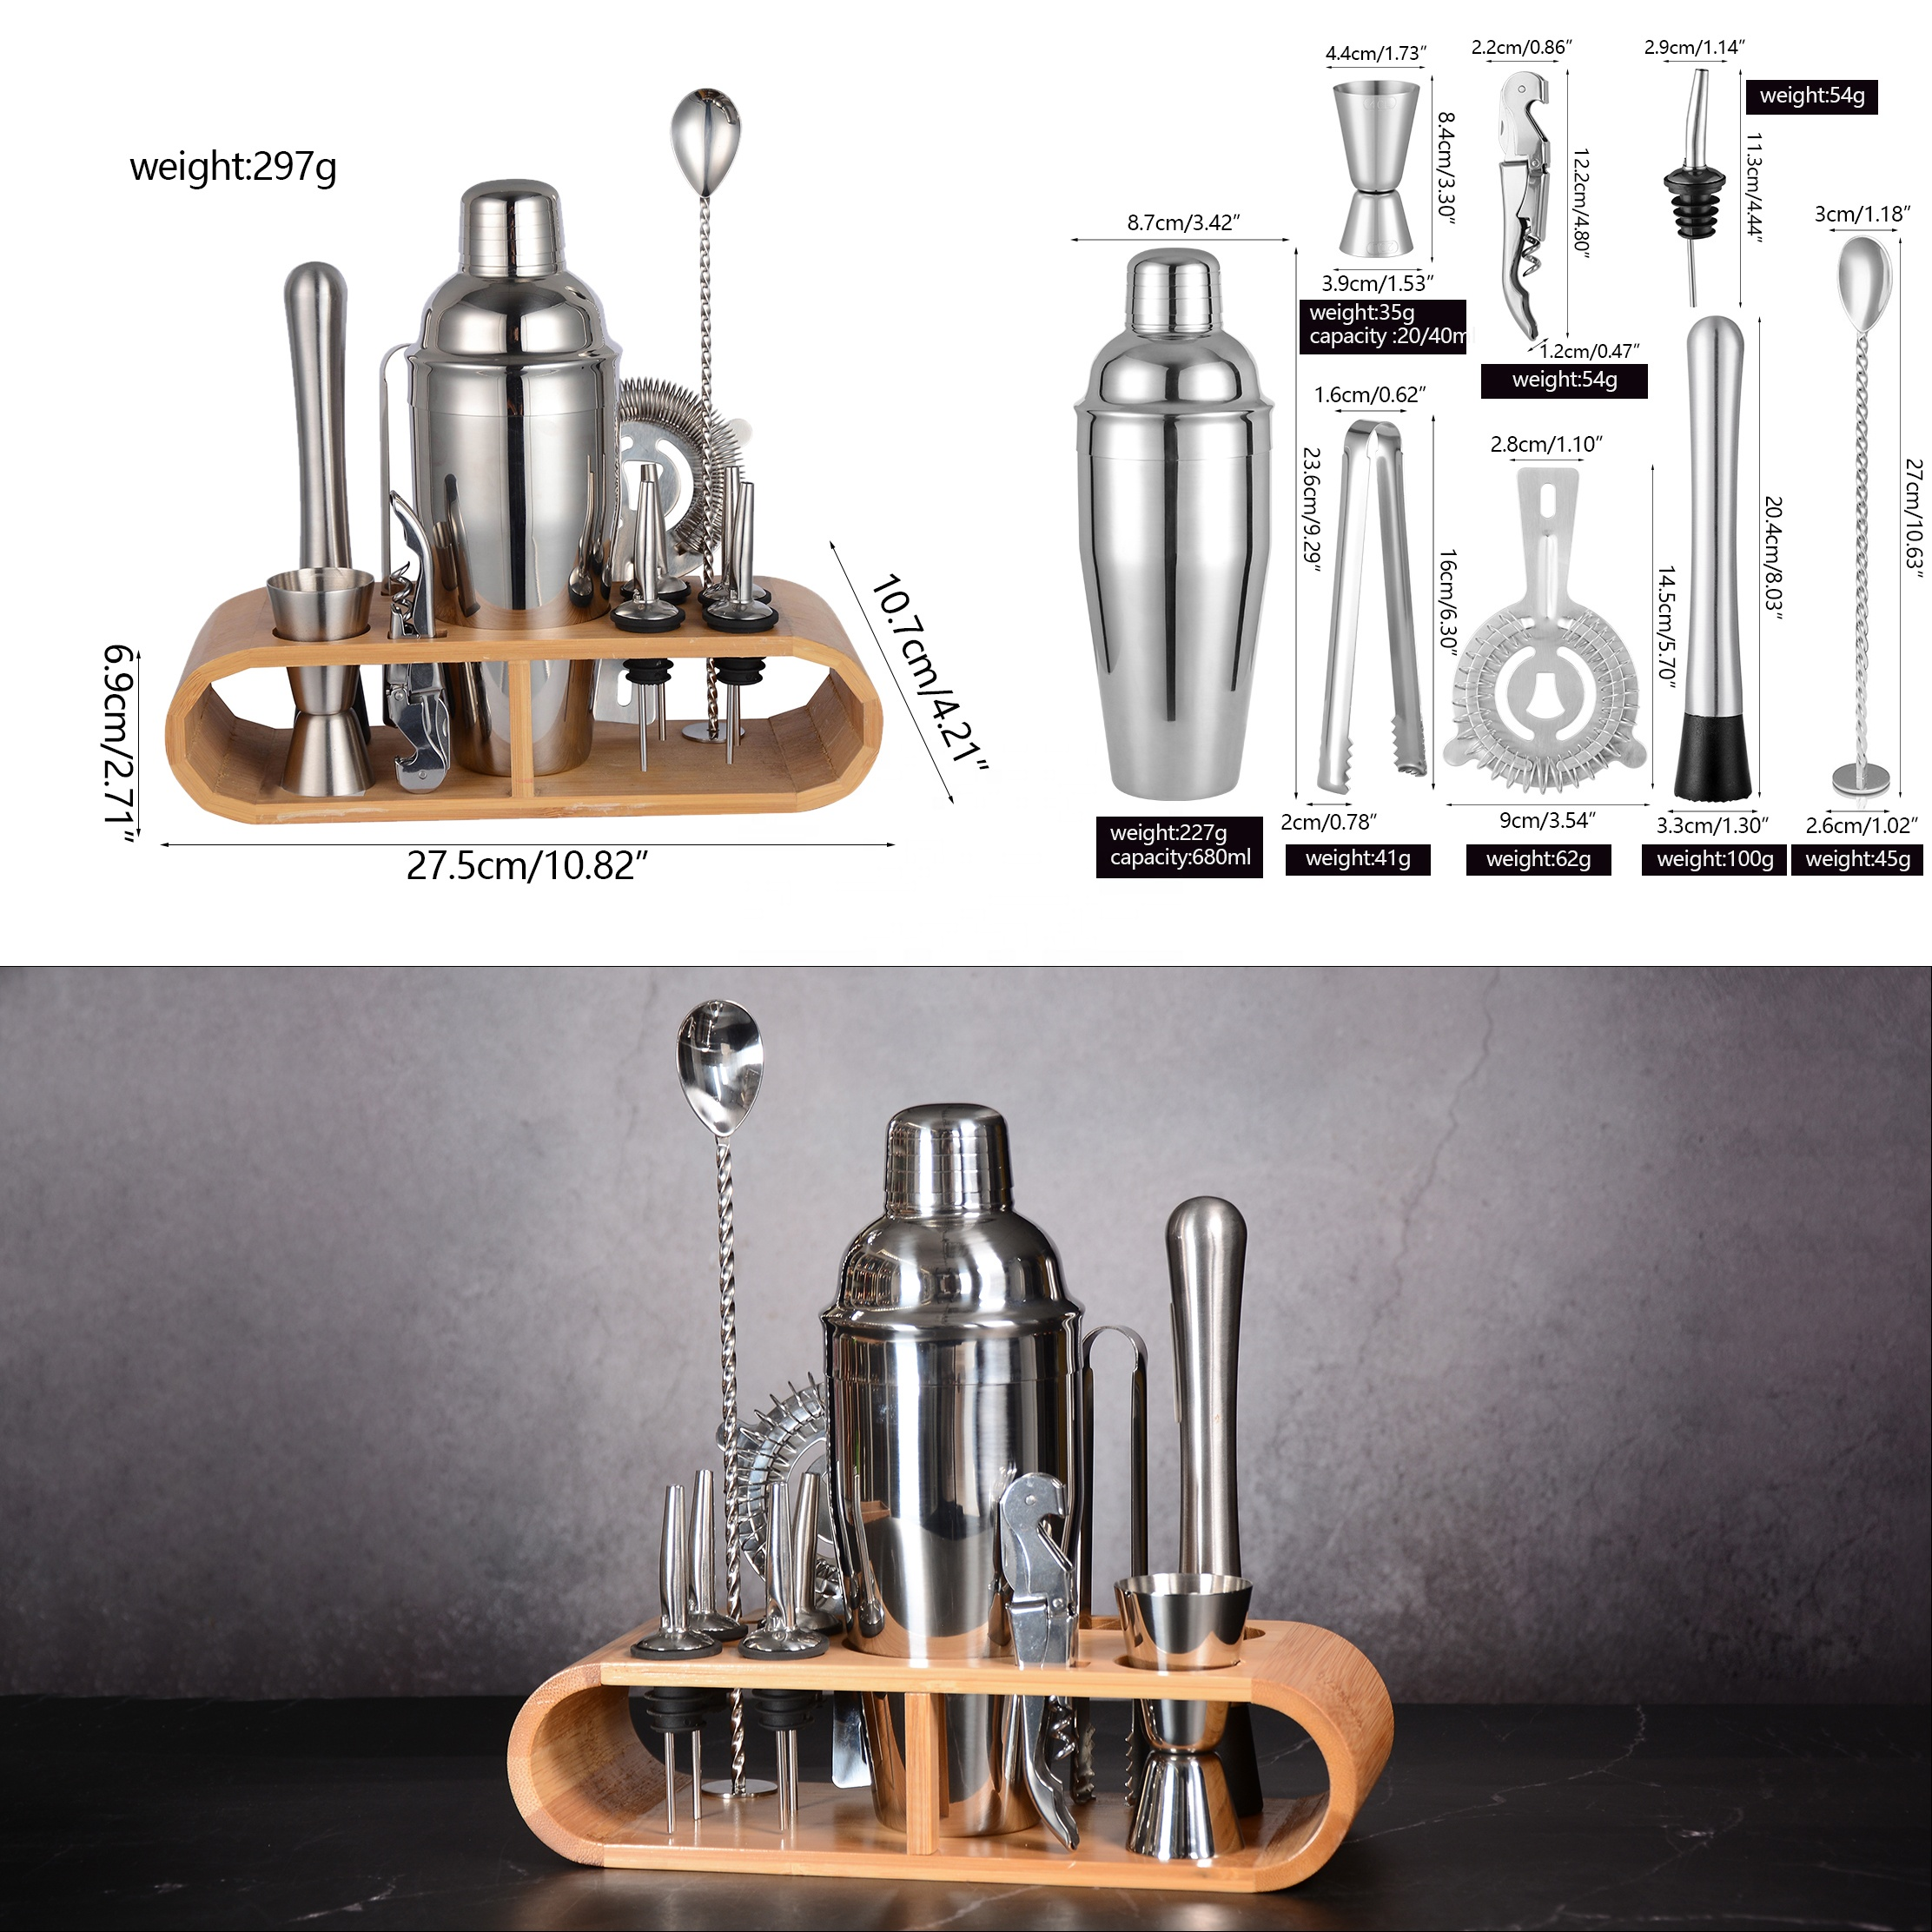 Custom high quality stainless steel bartender kit cocktail shaker set with wooden stand